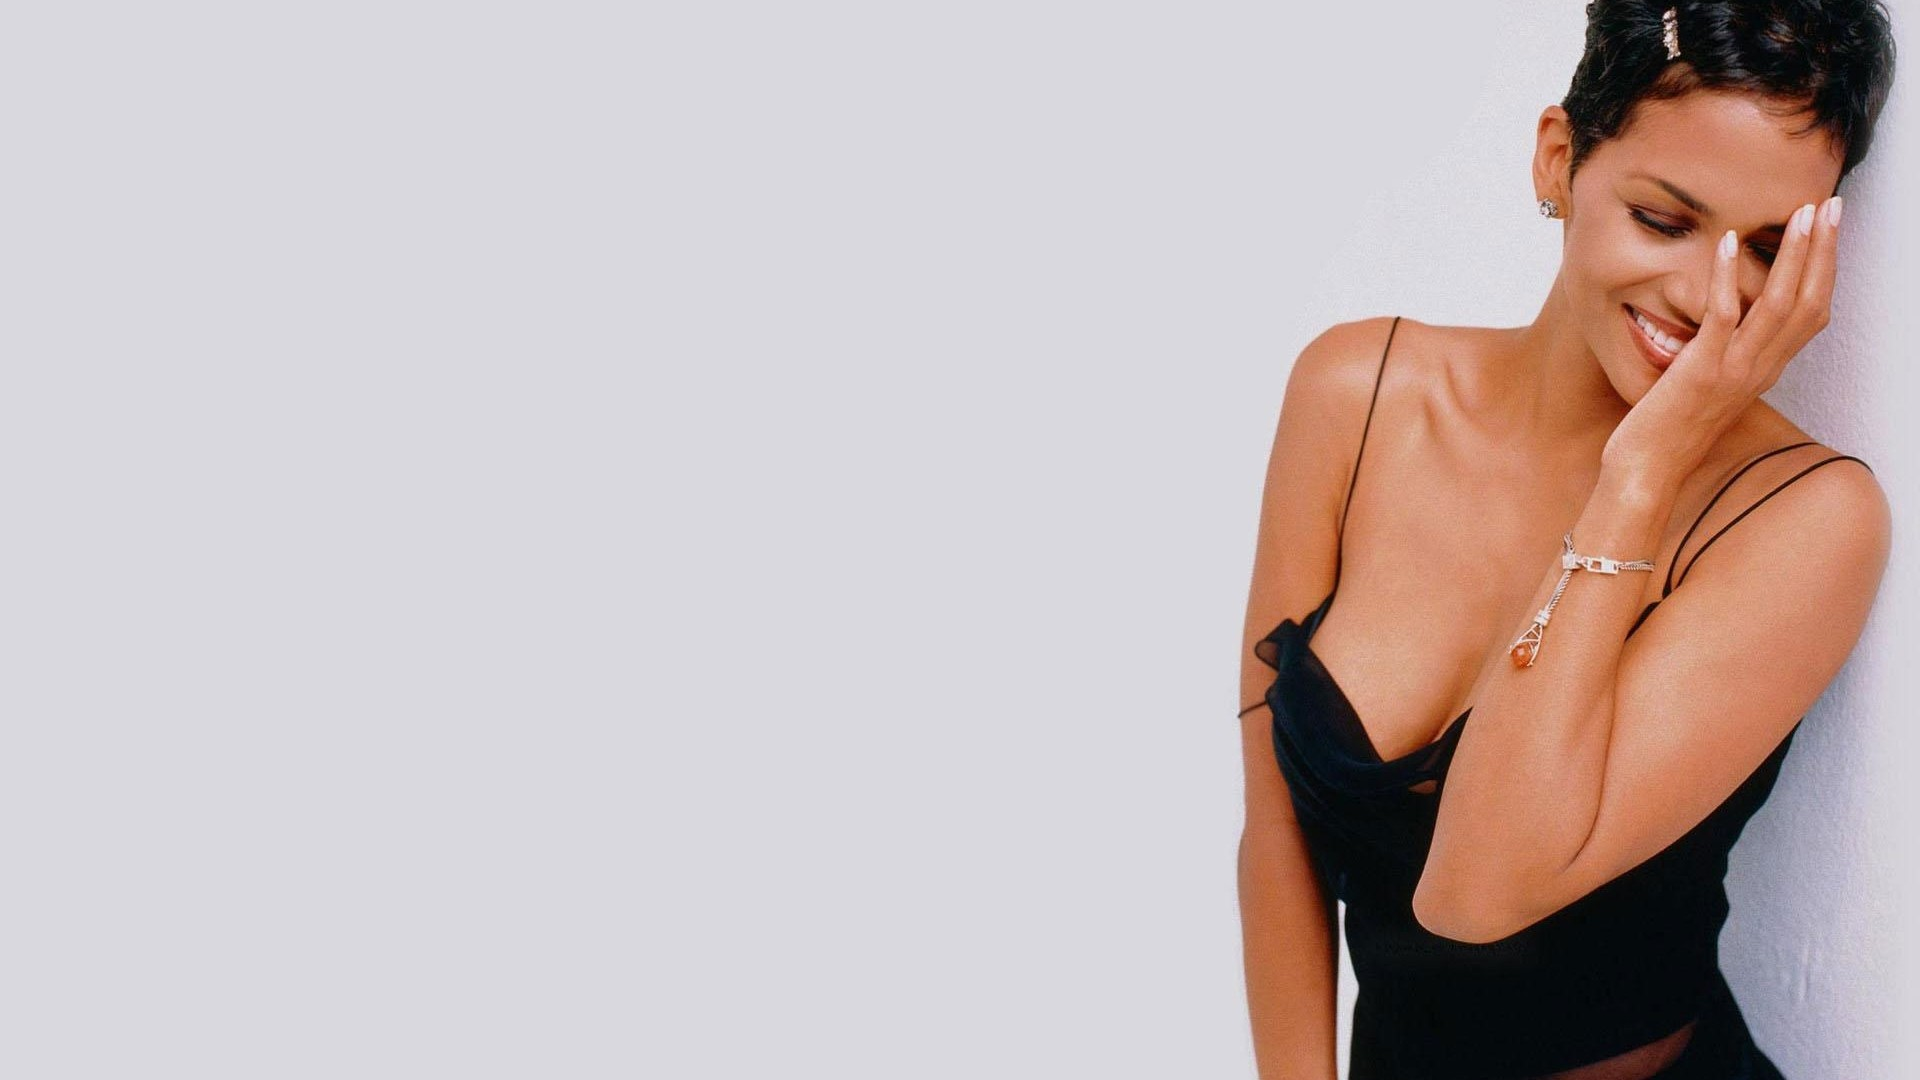 1920x1080 - Halle Berry Wallpapers 21